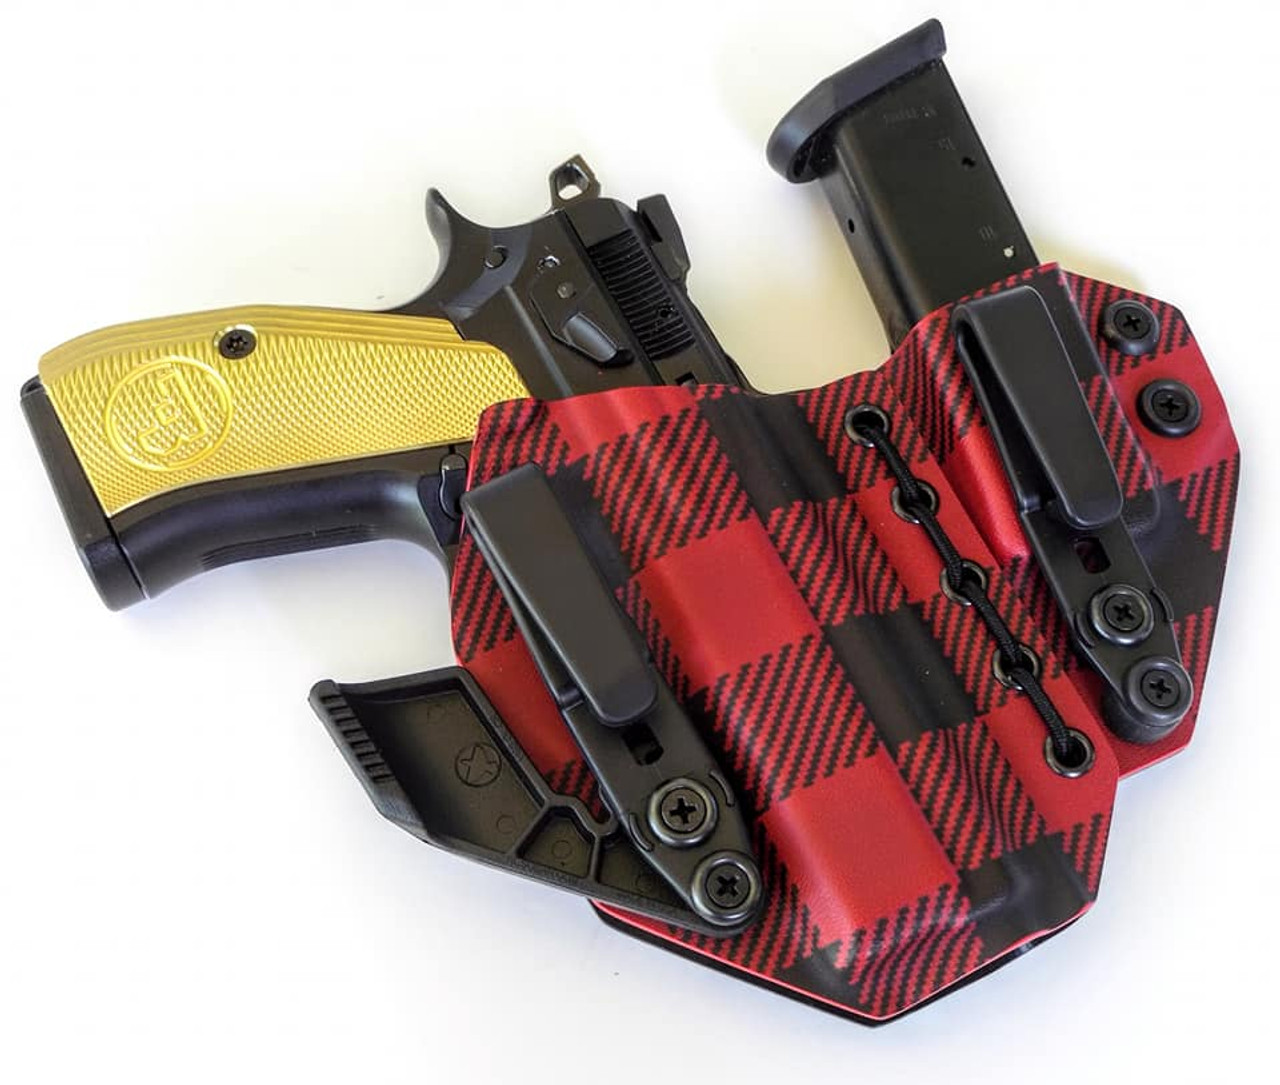 CZ P01 Flexible Appendix Carry Rig Holster